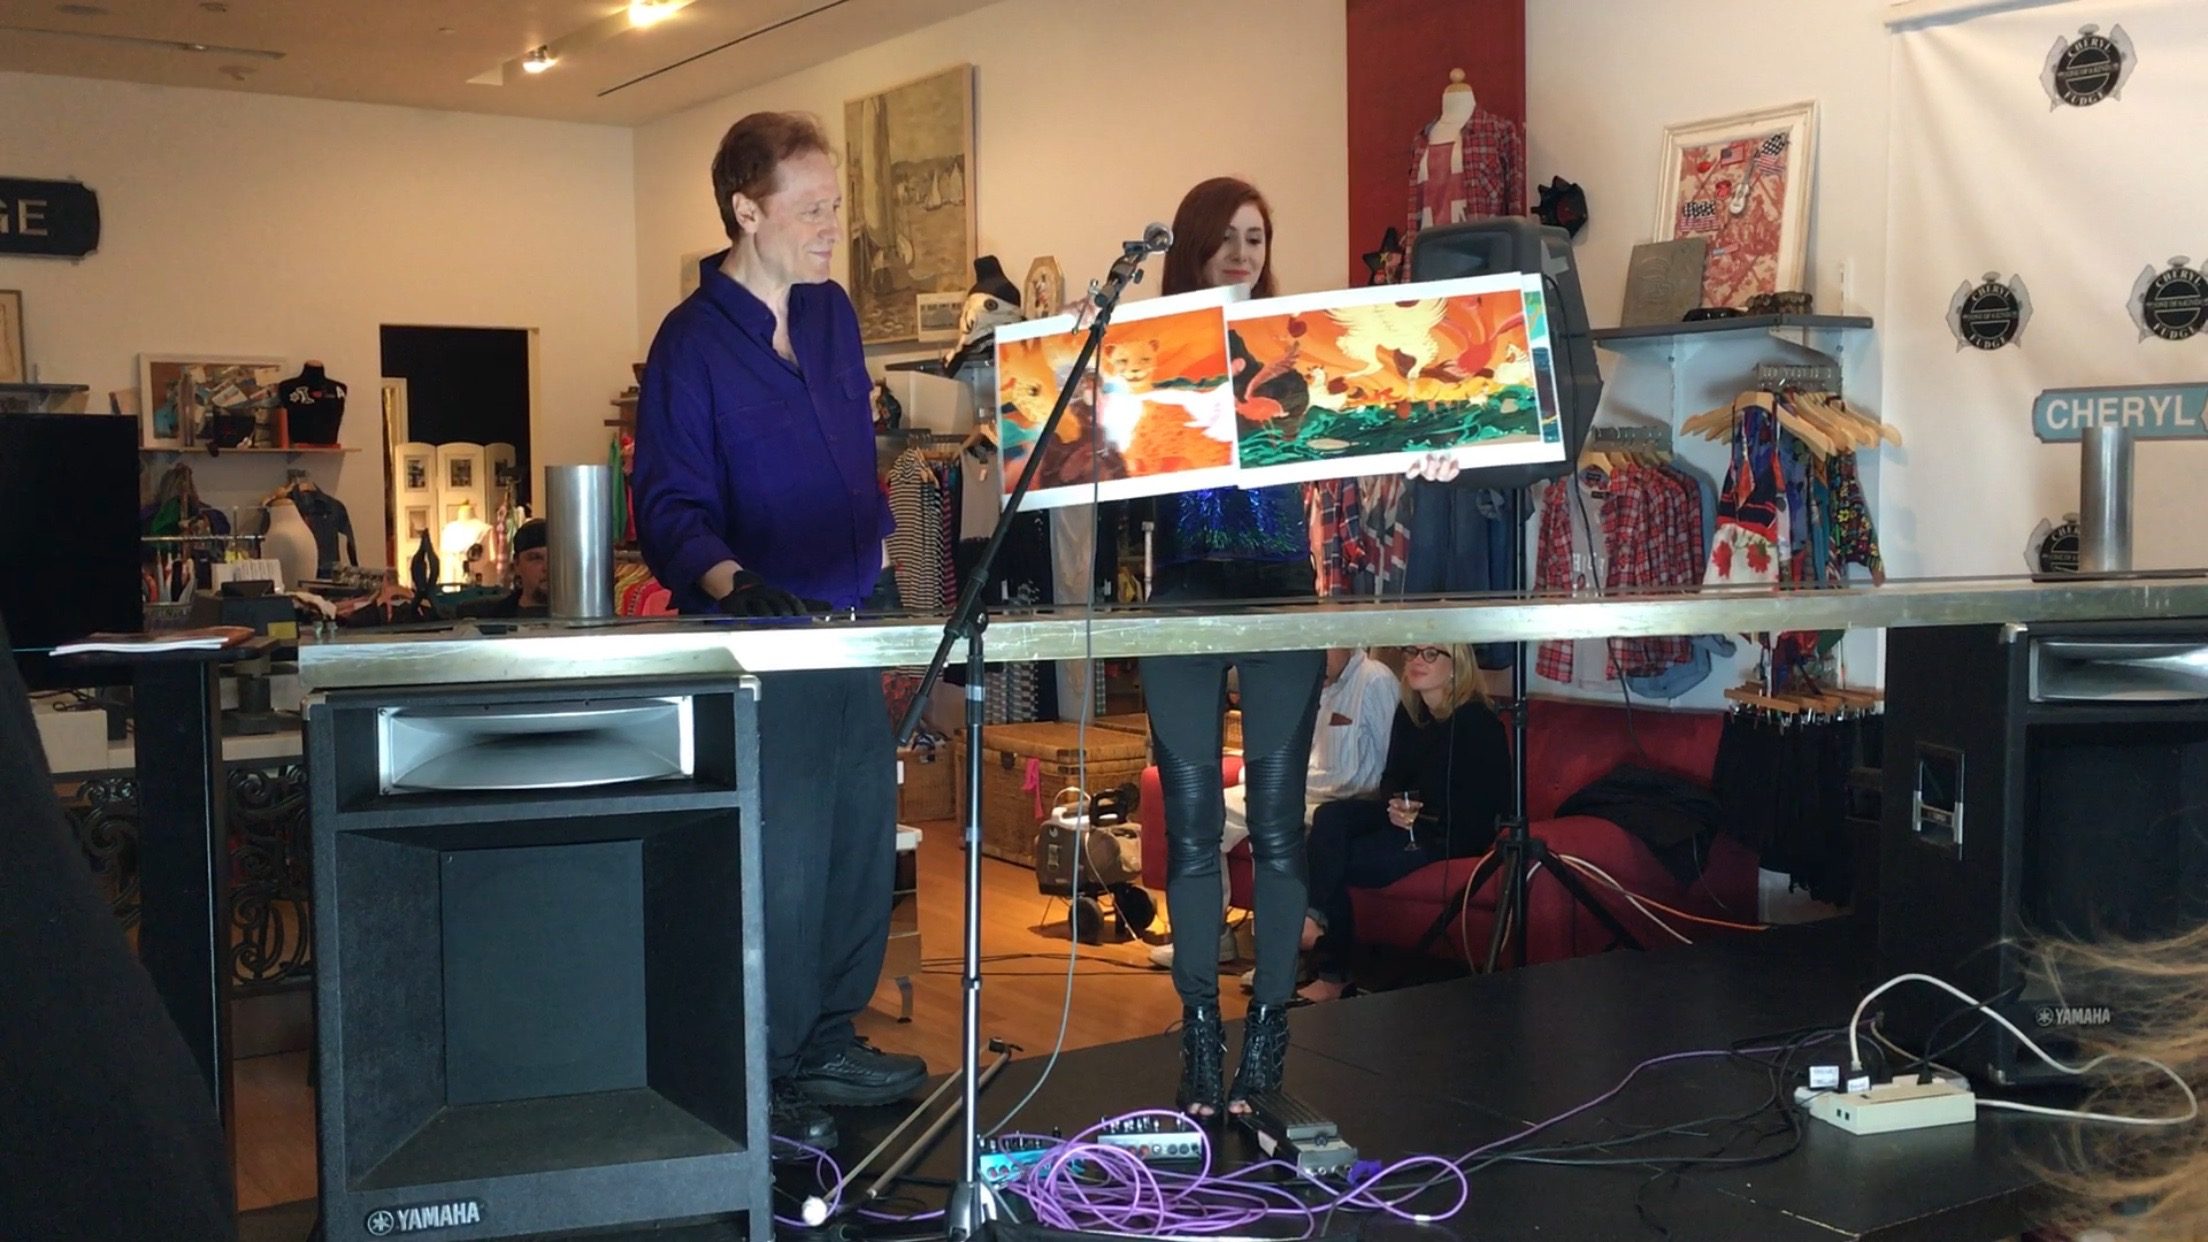 Fiona shows illustrations from her elephant children's book